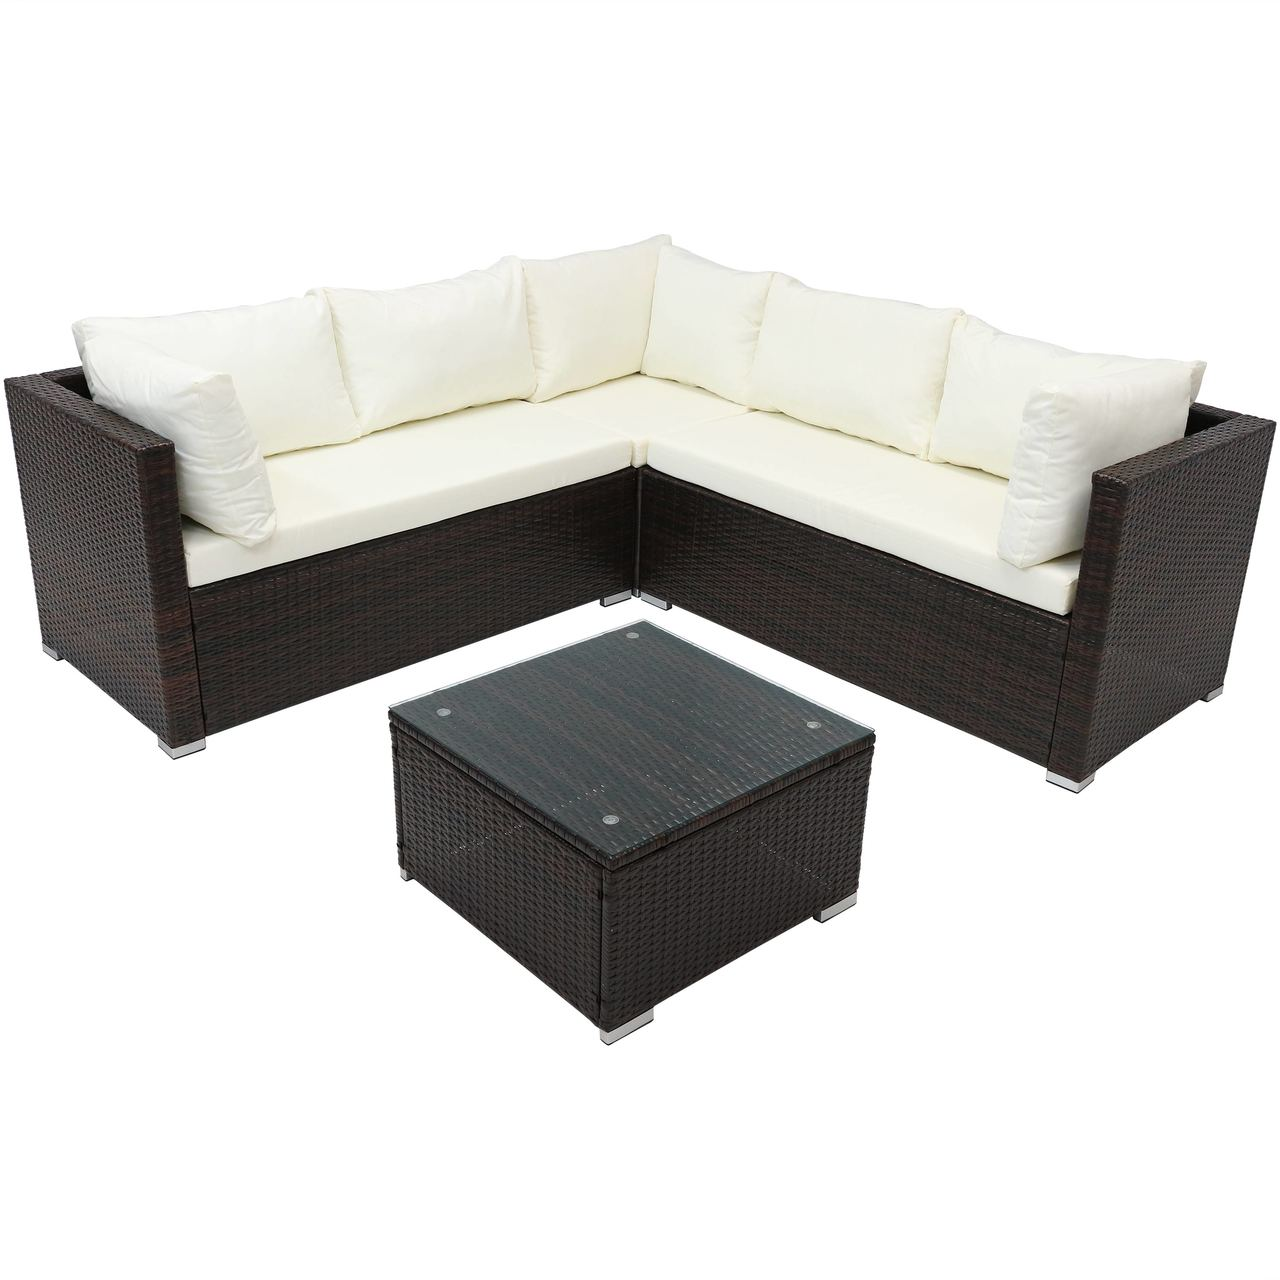 Sofa Rattan Sunnydaze Port Laoise Rattan Sectional Sofa Patio Furniture Set With Cushions